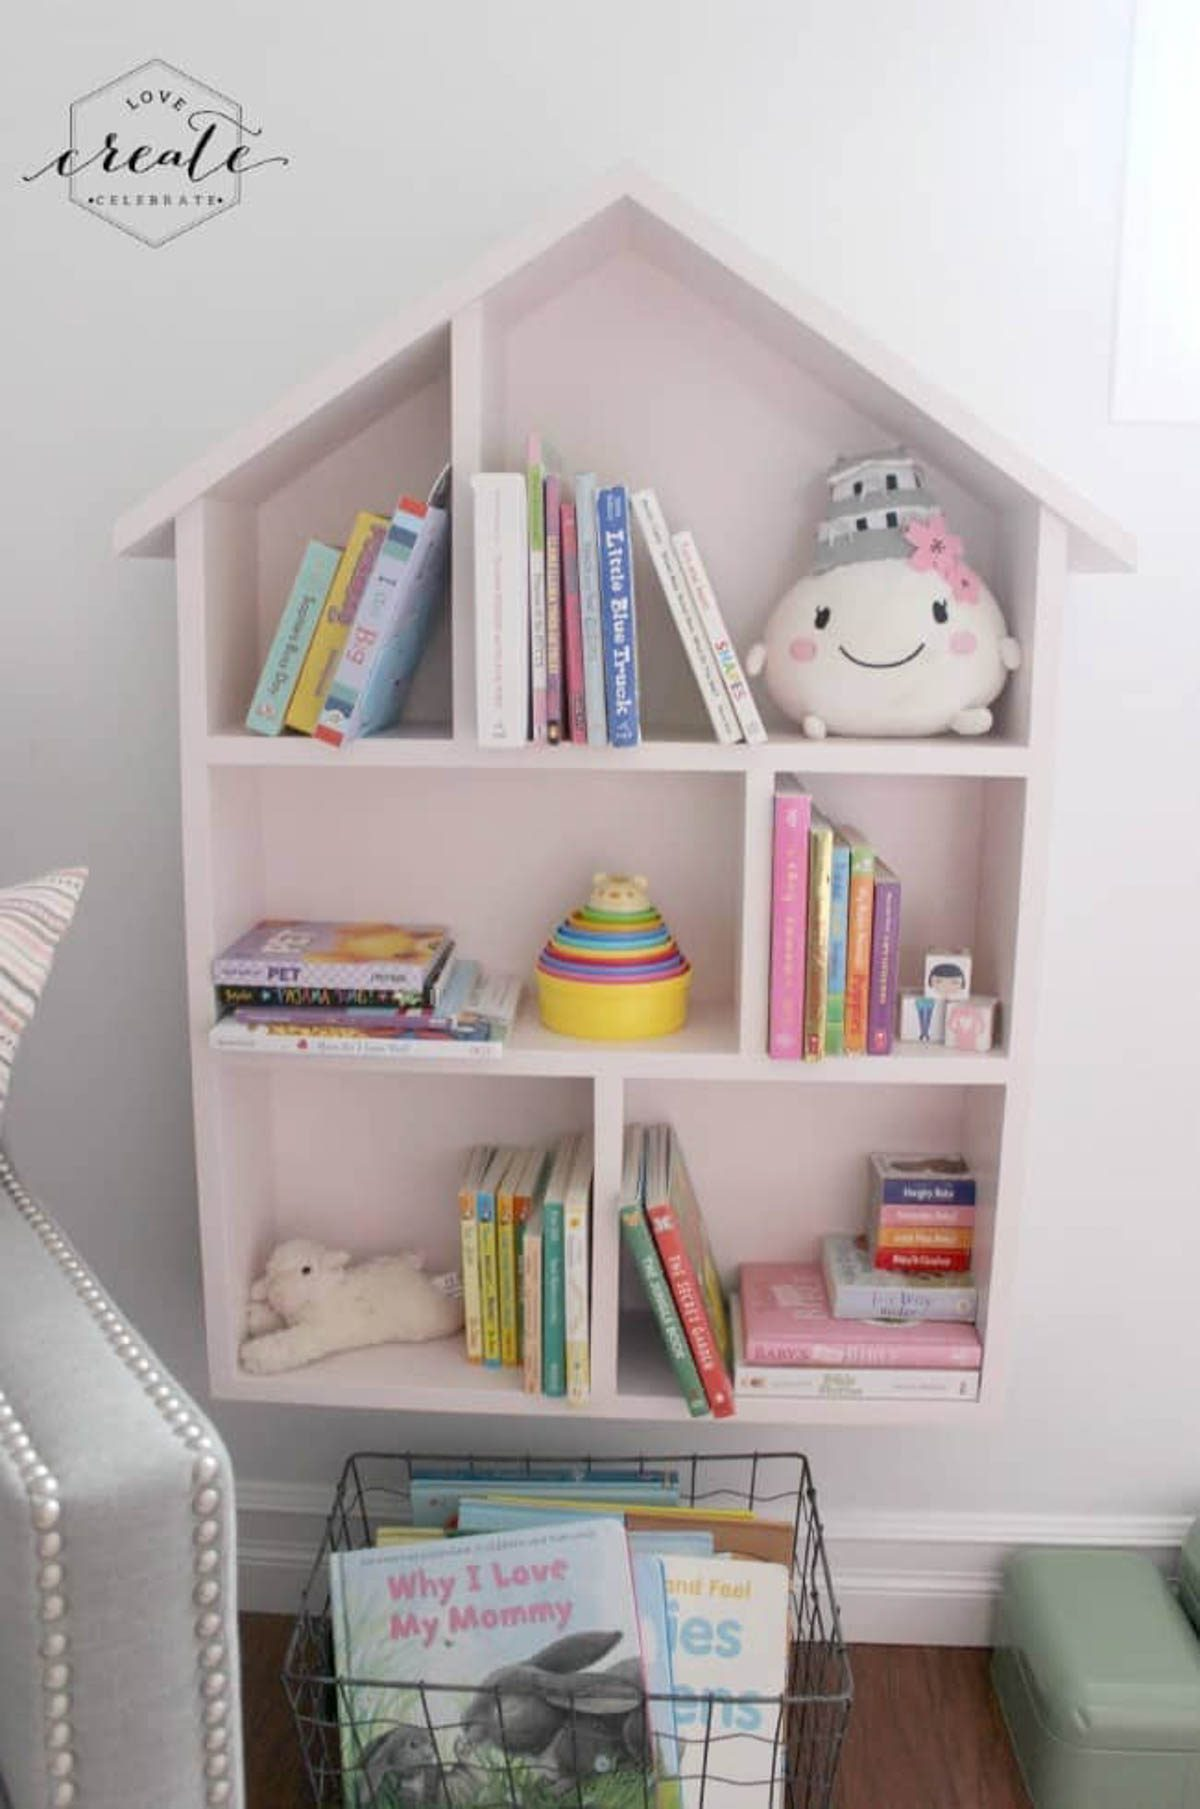 House bookshelf staged with children's books and toys